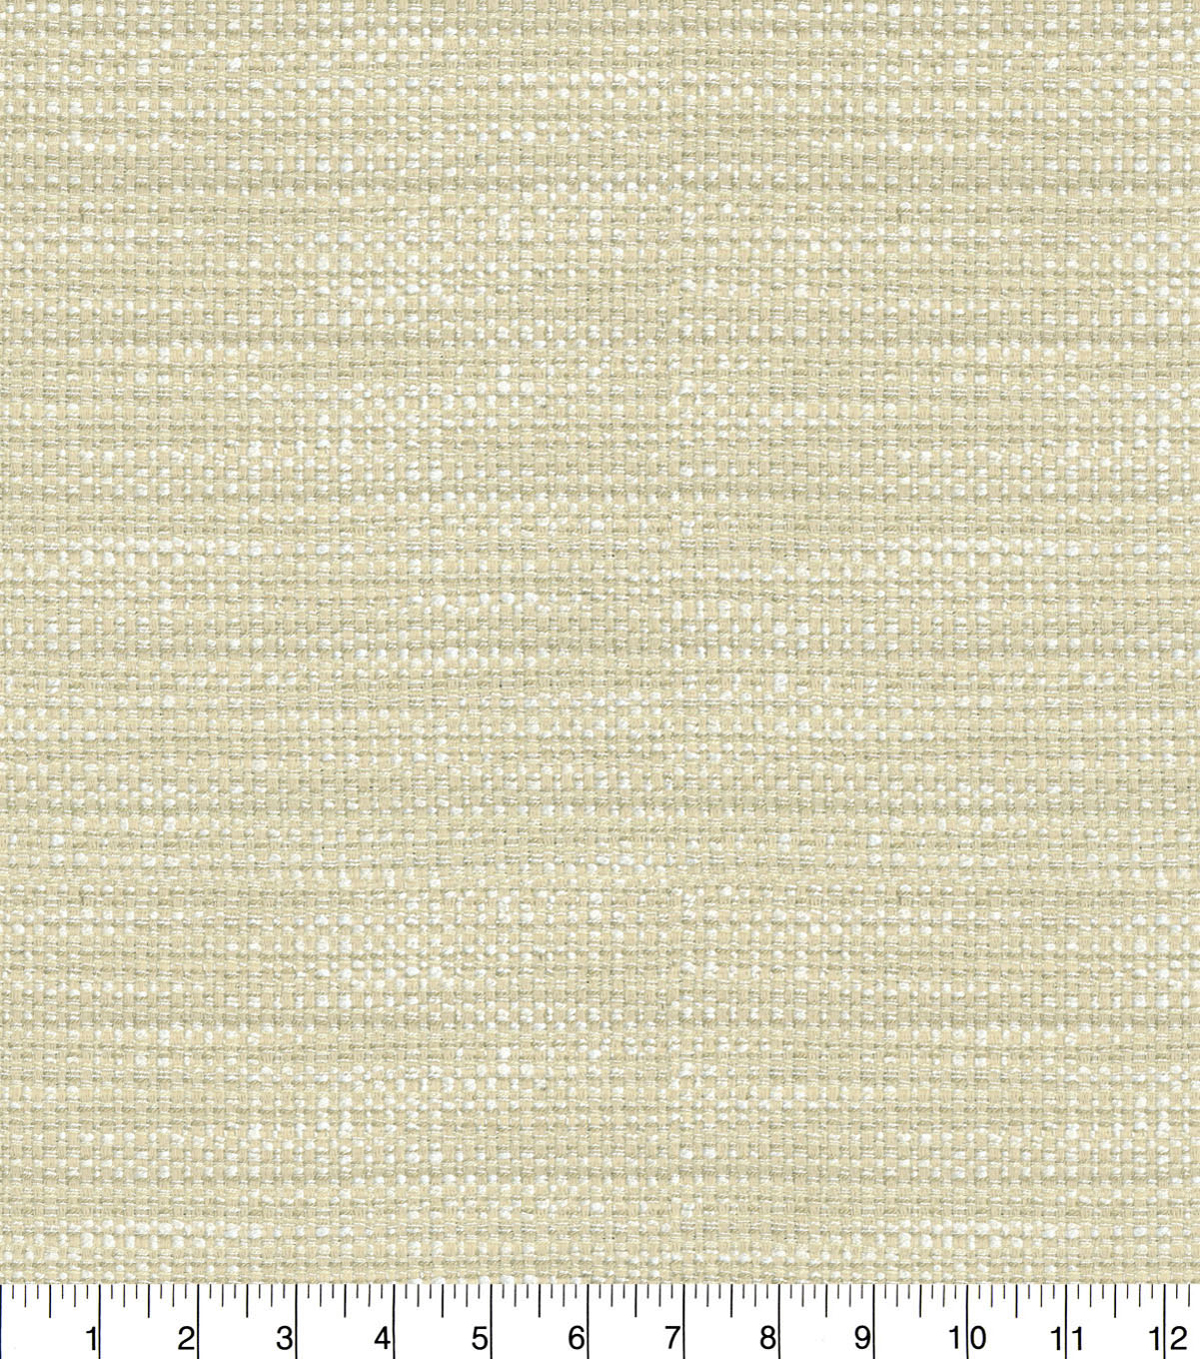 Waverly Upholstery Décor Fabric 9\u0022x9\u0022 Swatch-Tabby Birch